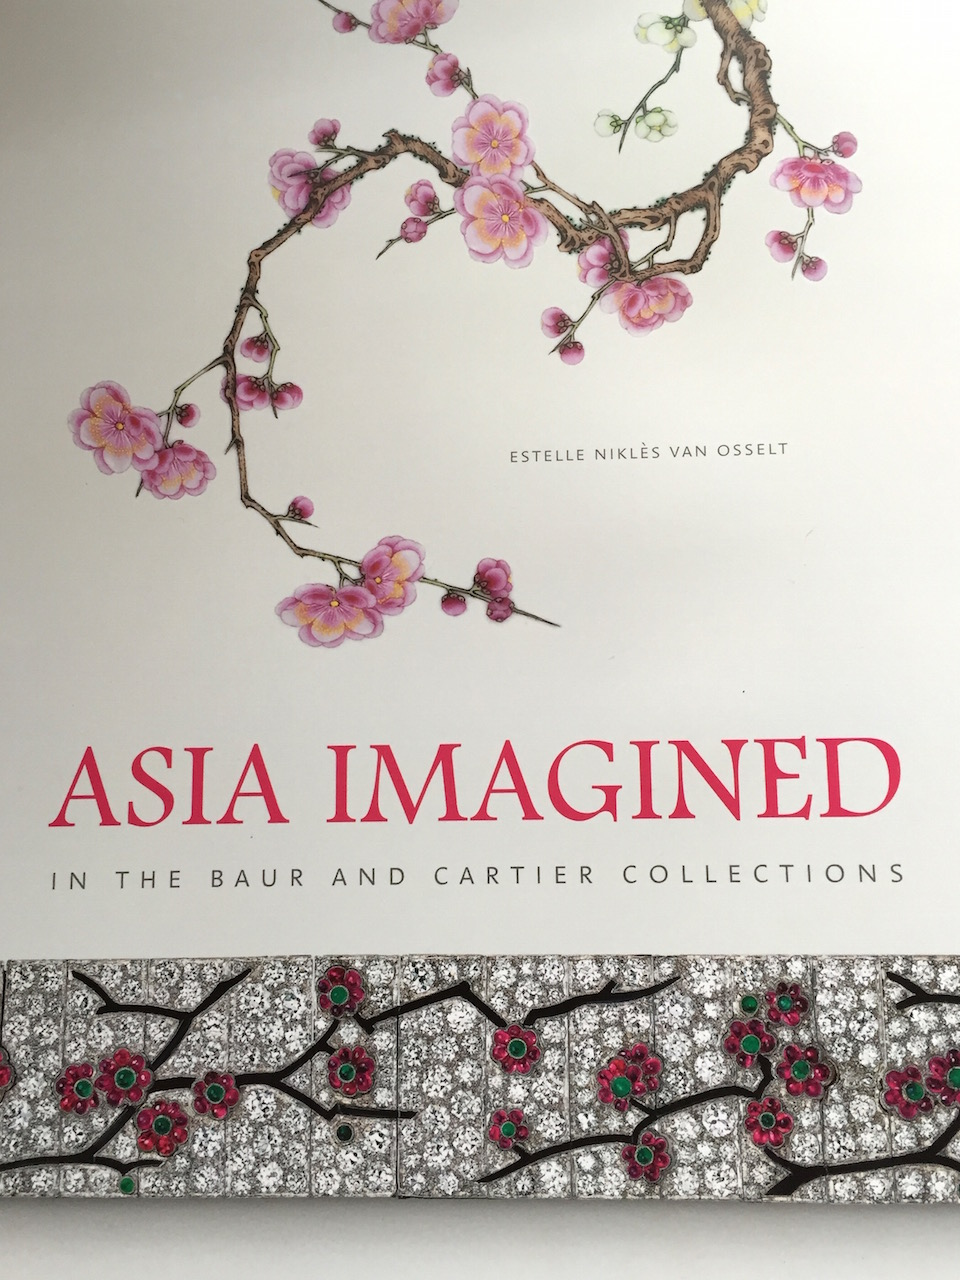 The cover of the new Cartier, Asia Imagined, book